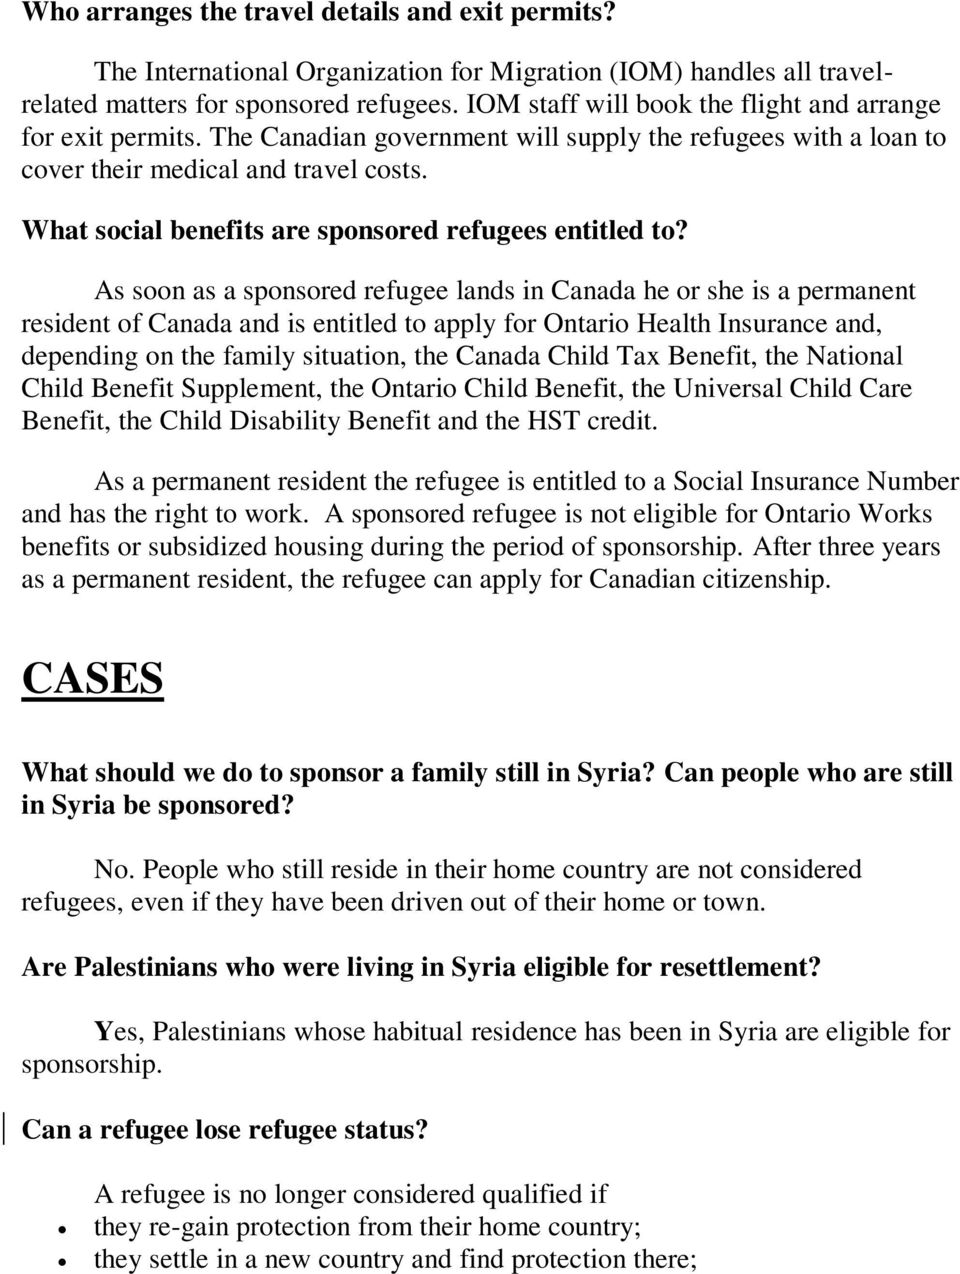 What social benefits are sponsored refugees entitled to?